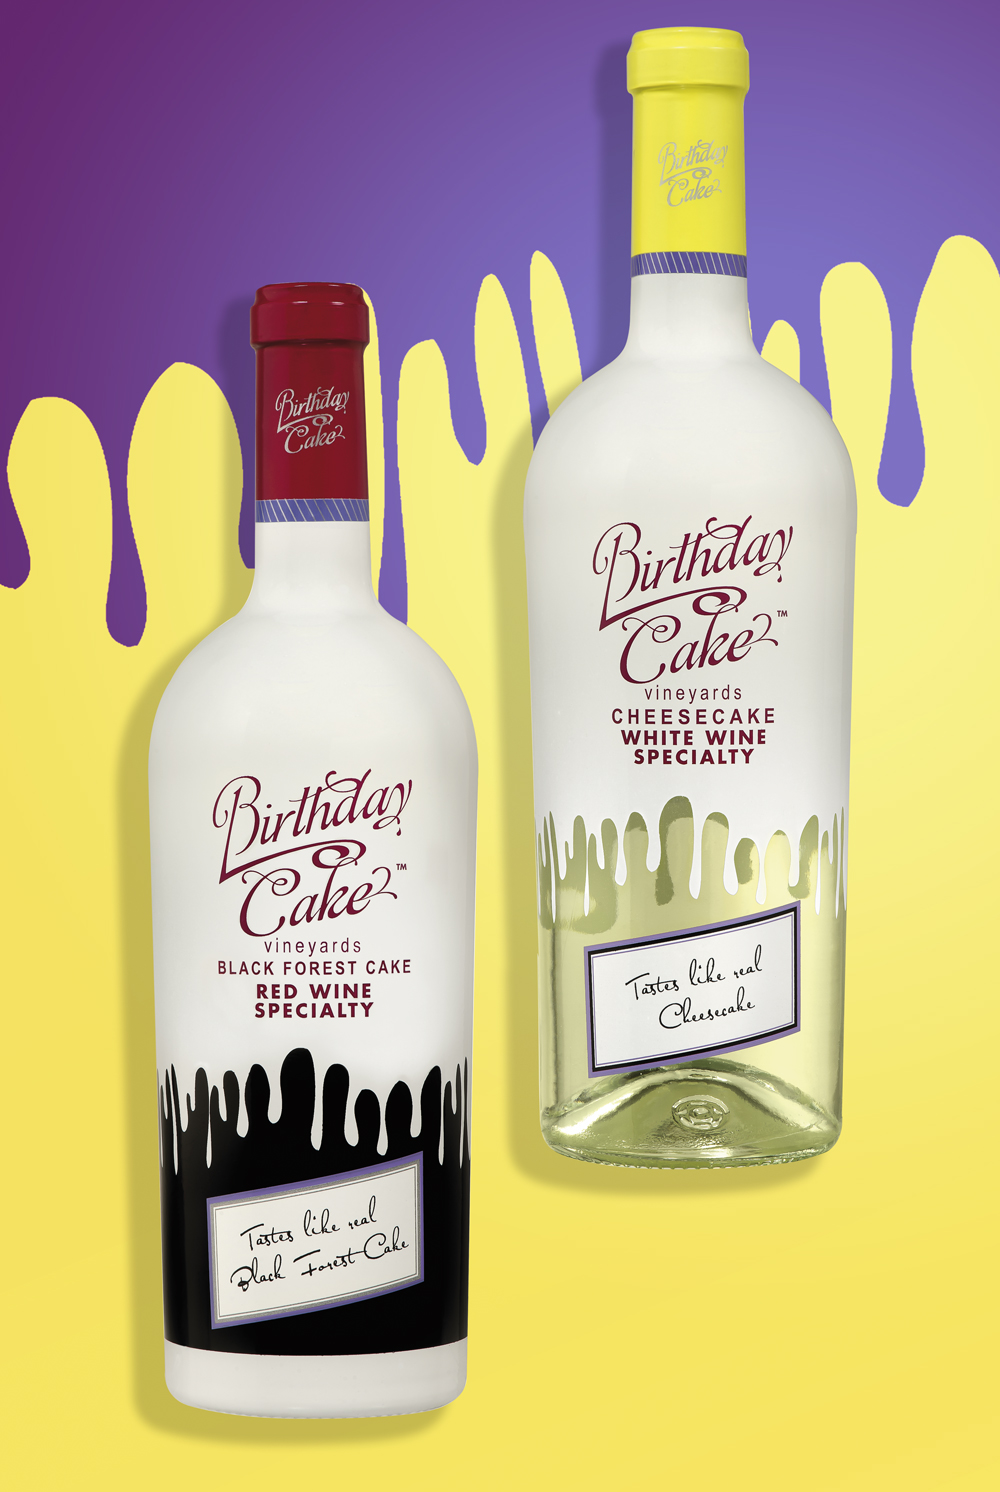 BIRTHDAY CAKE LINEA Design Agency Specializing In Wine And Spirits